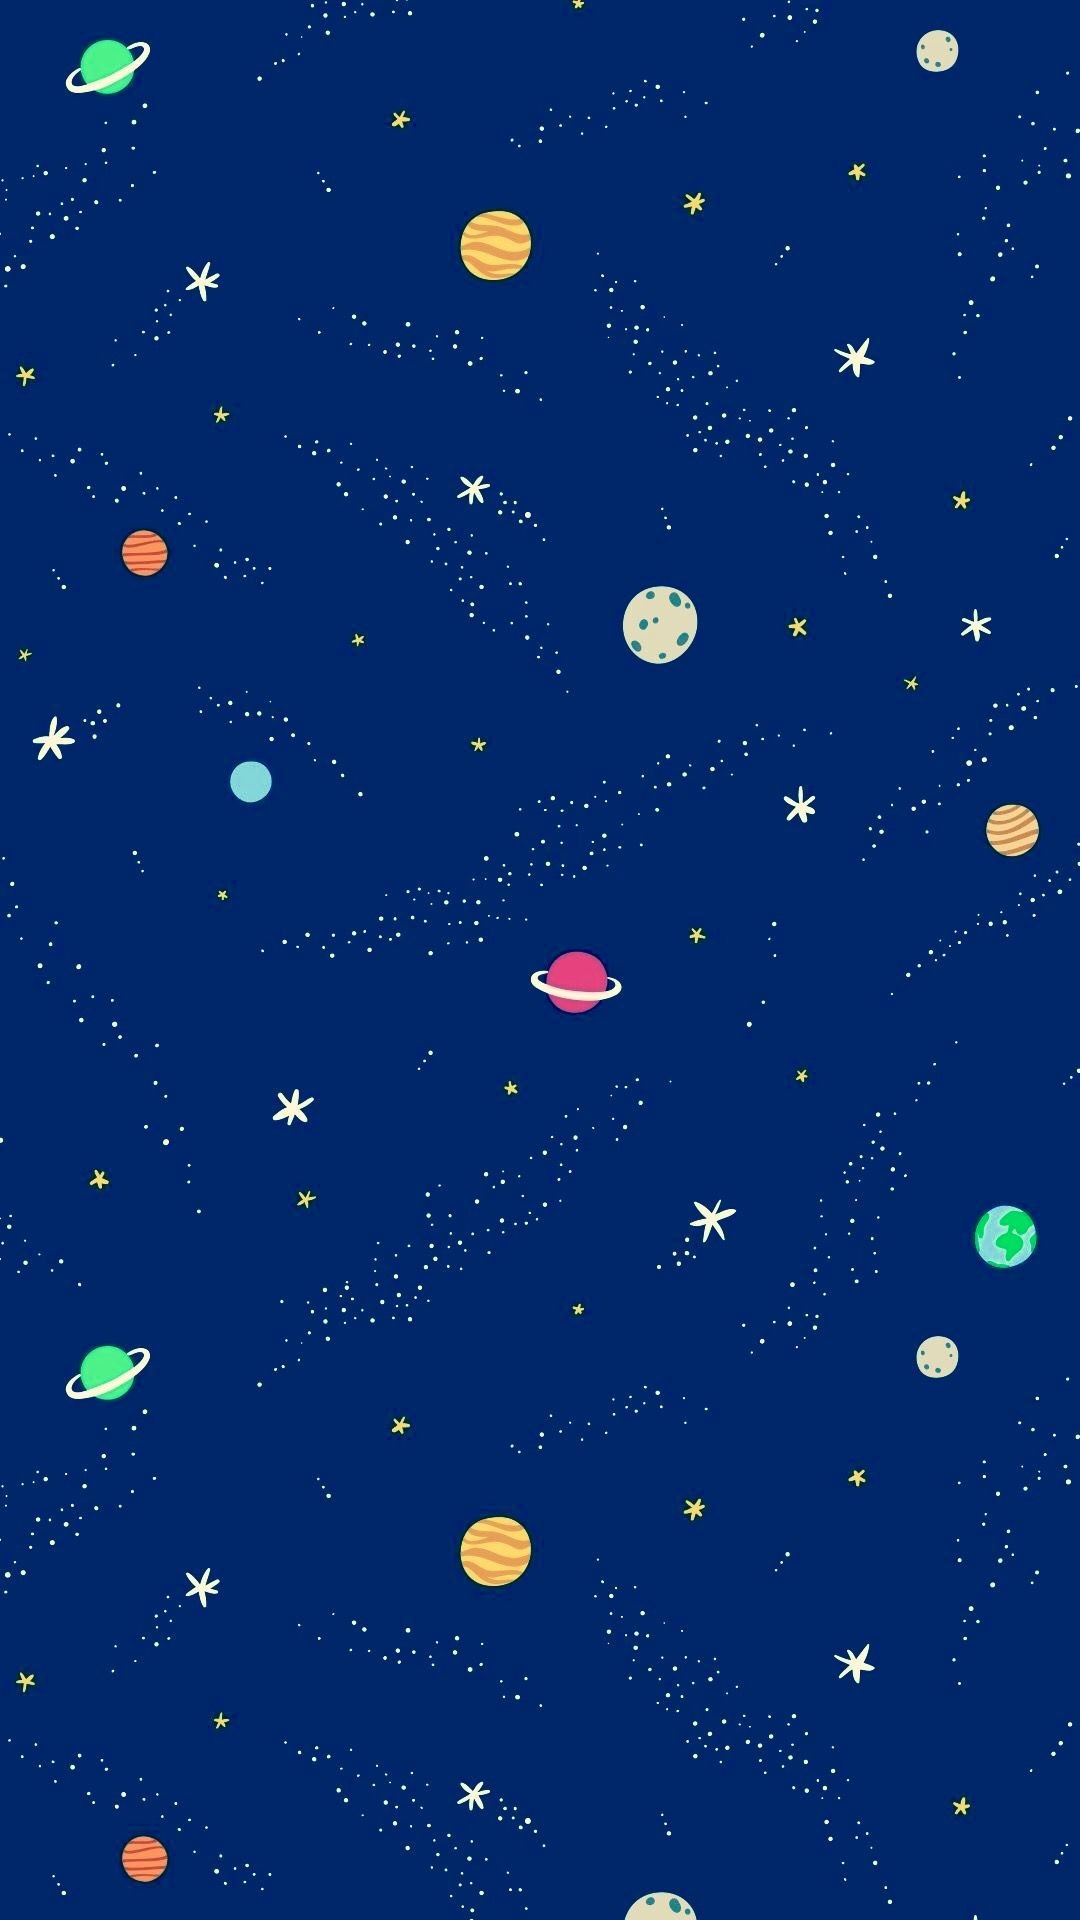 Star And Moon Wallpaper Posted By Ryan Anderson